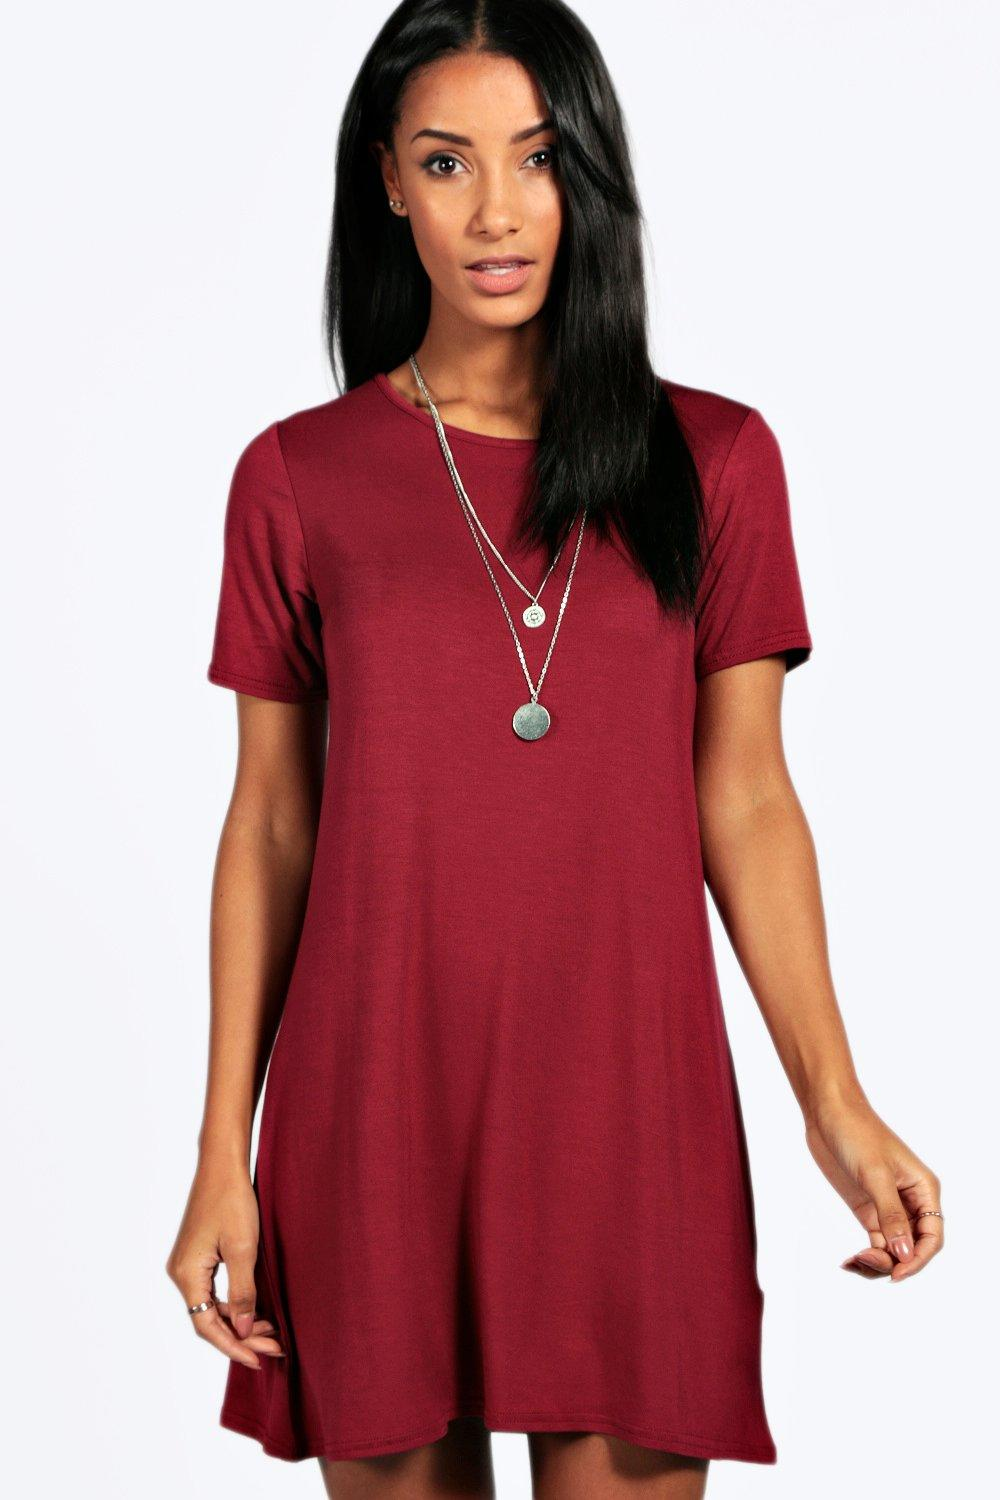 Find Shift dresses from the Womens department at Debenhams. Shop a wide range of Dresses products and more at our online shop today.